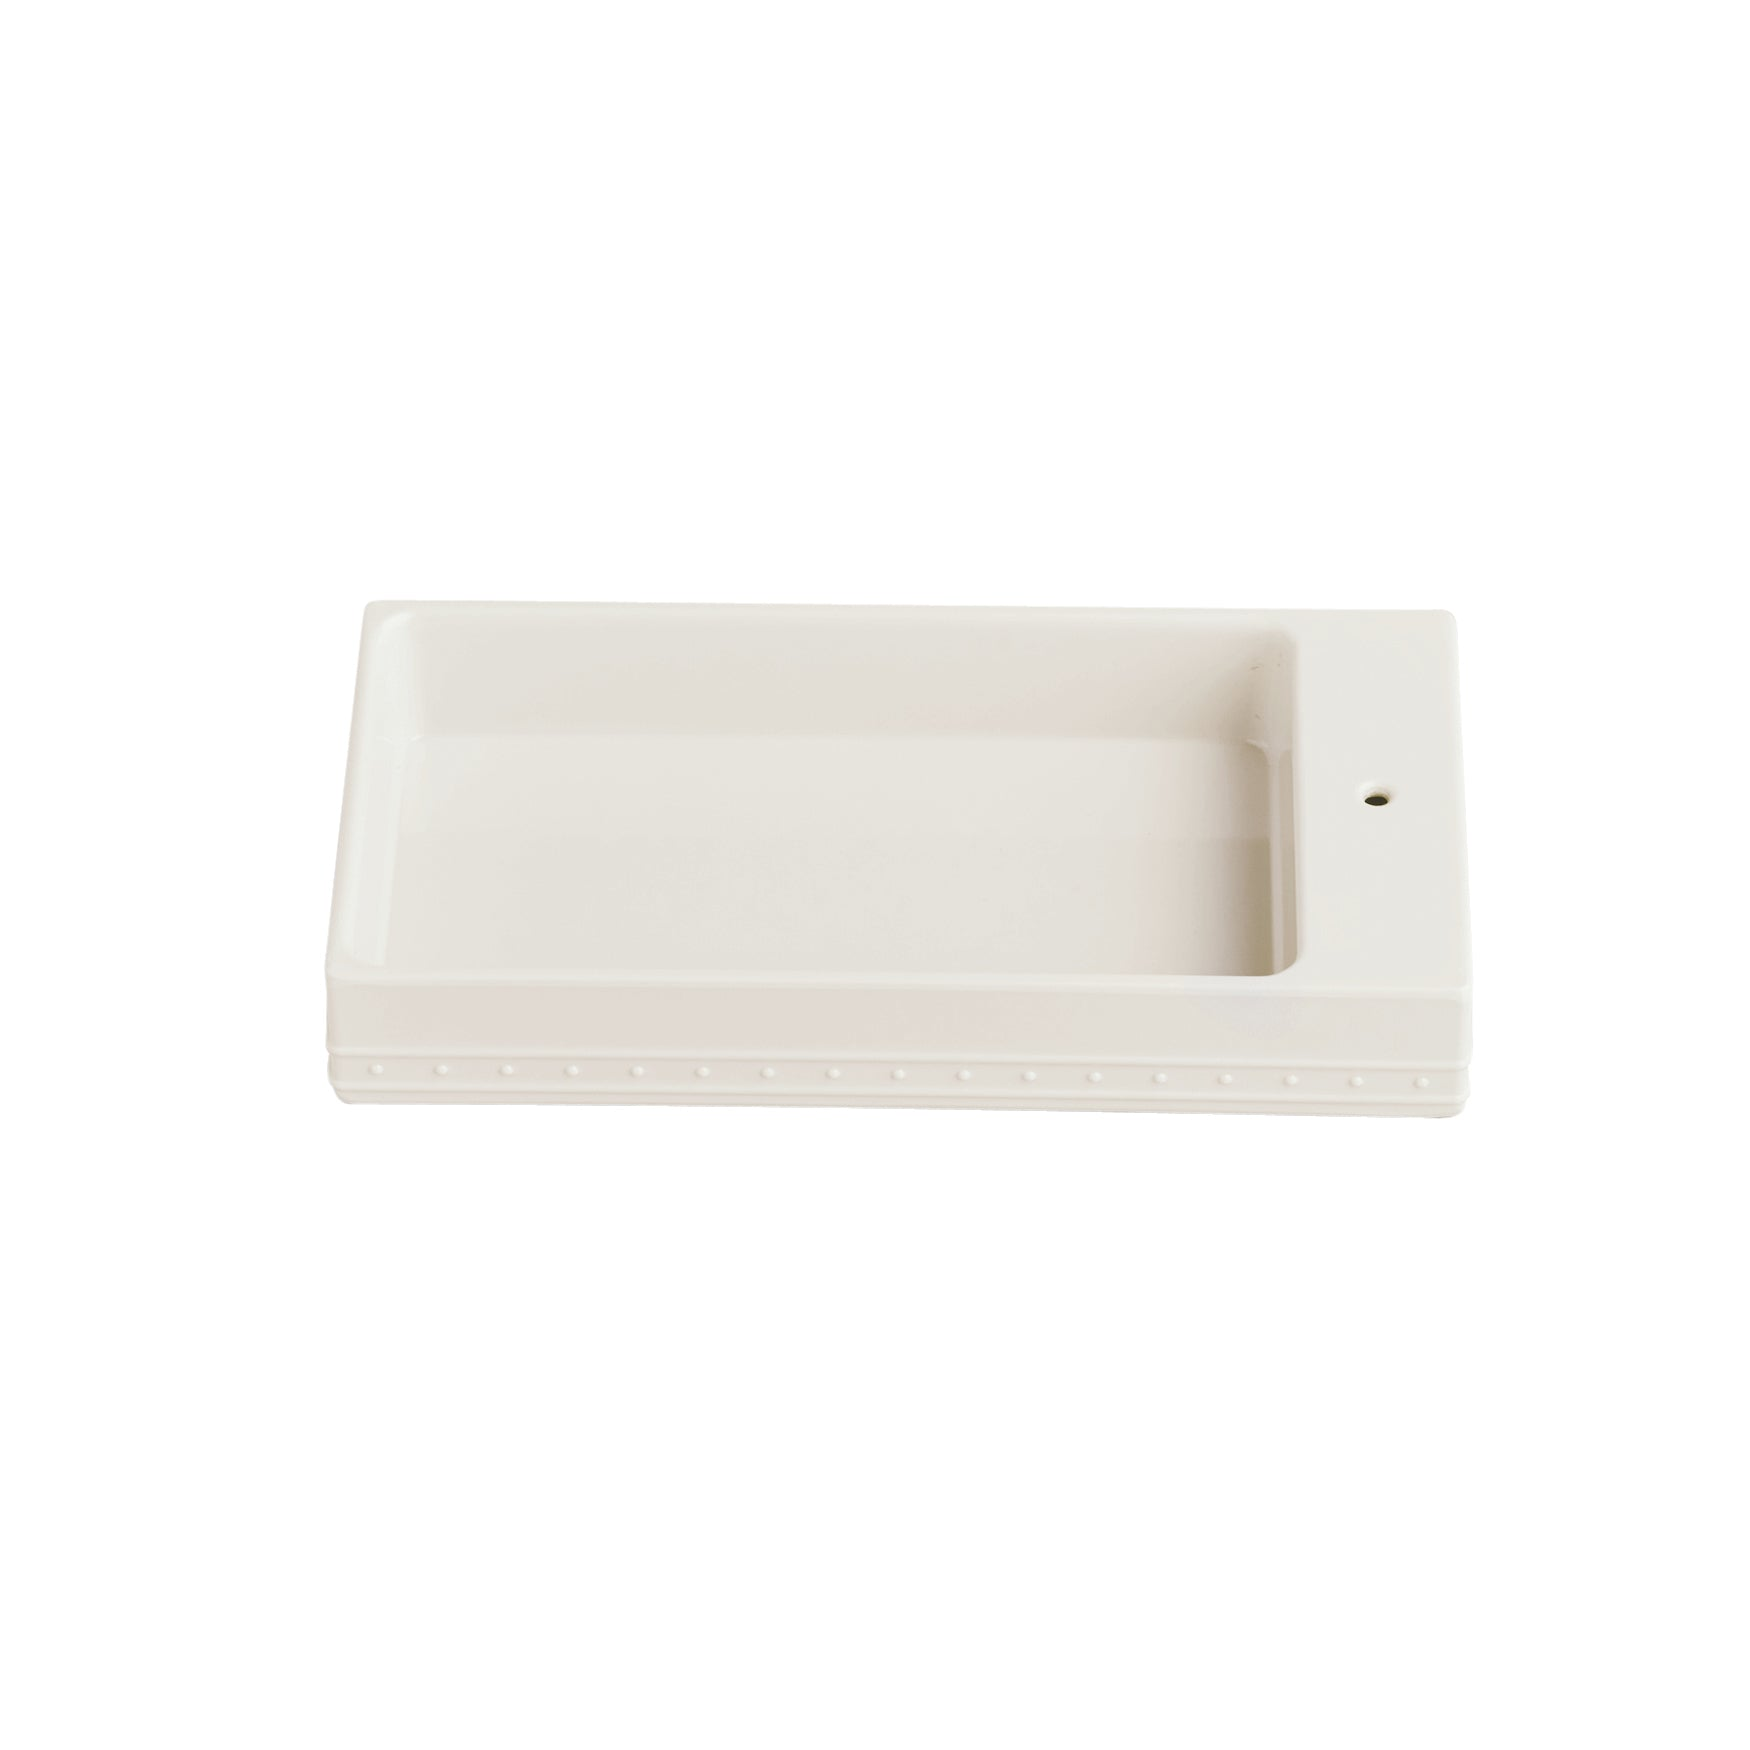 Nora Melamine Guest Towel Holder